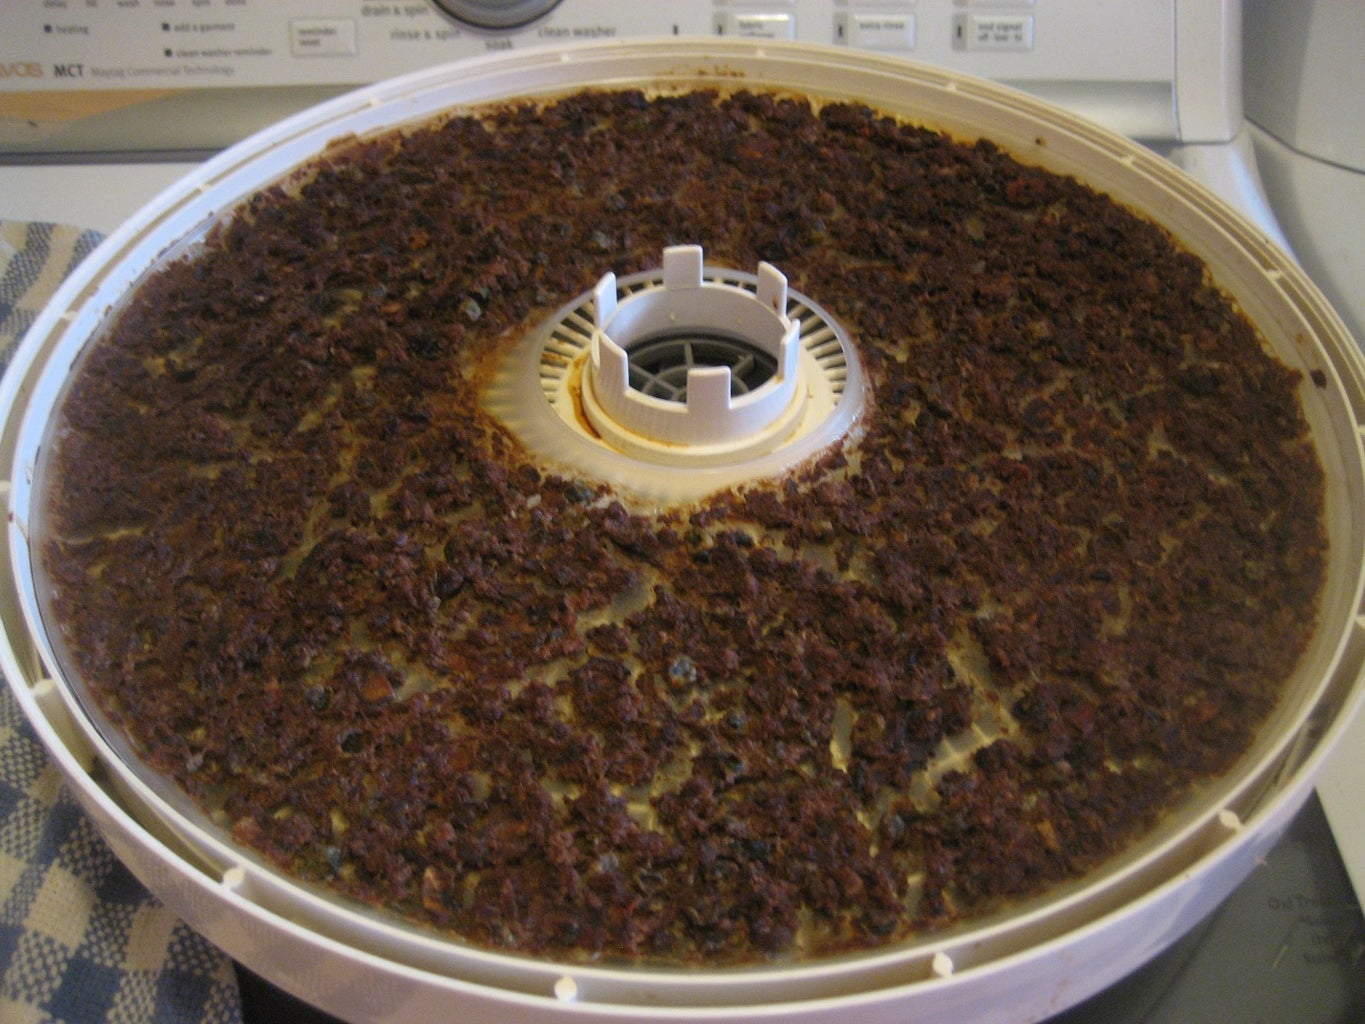 Remove the Meal From the Dehydrator Trays